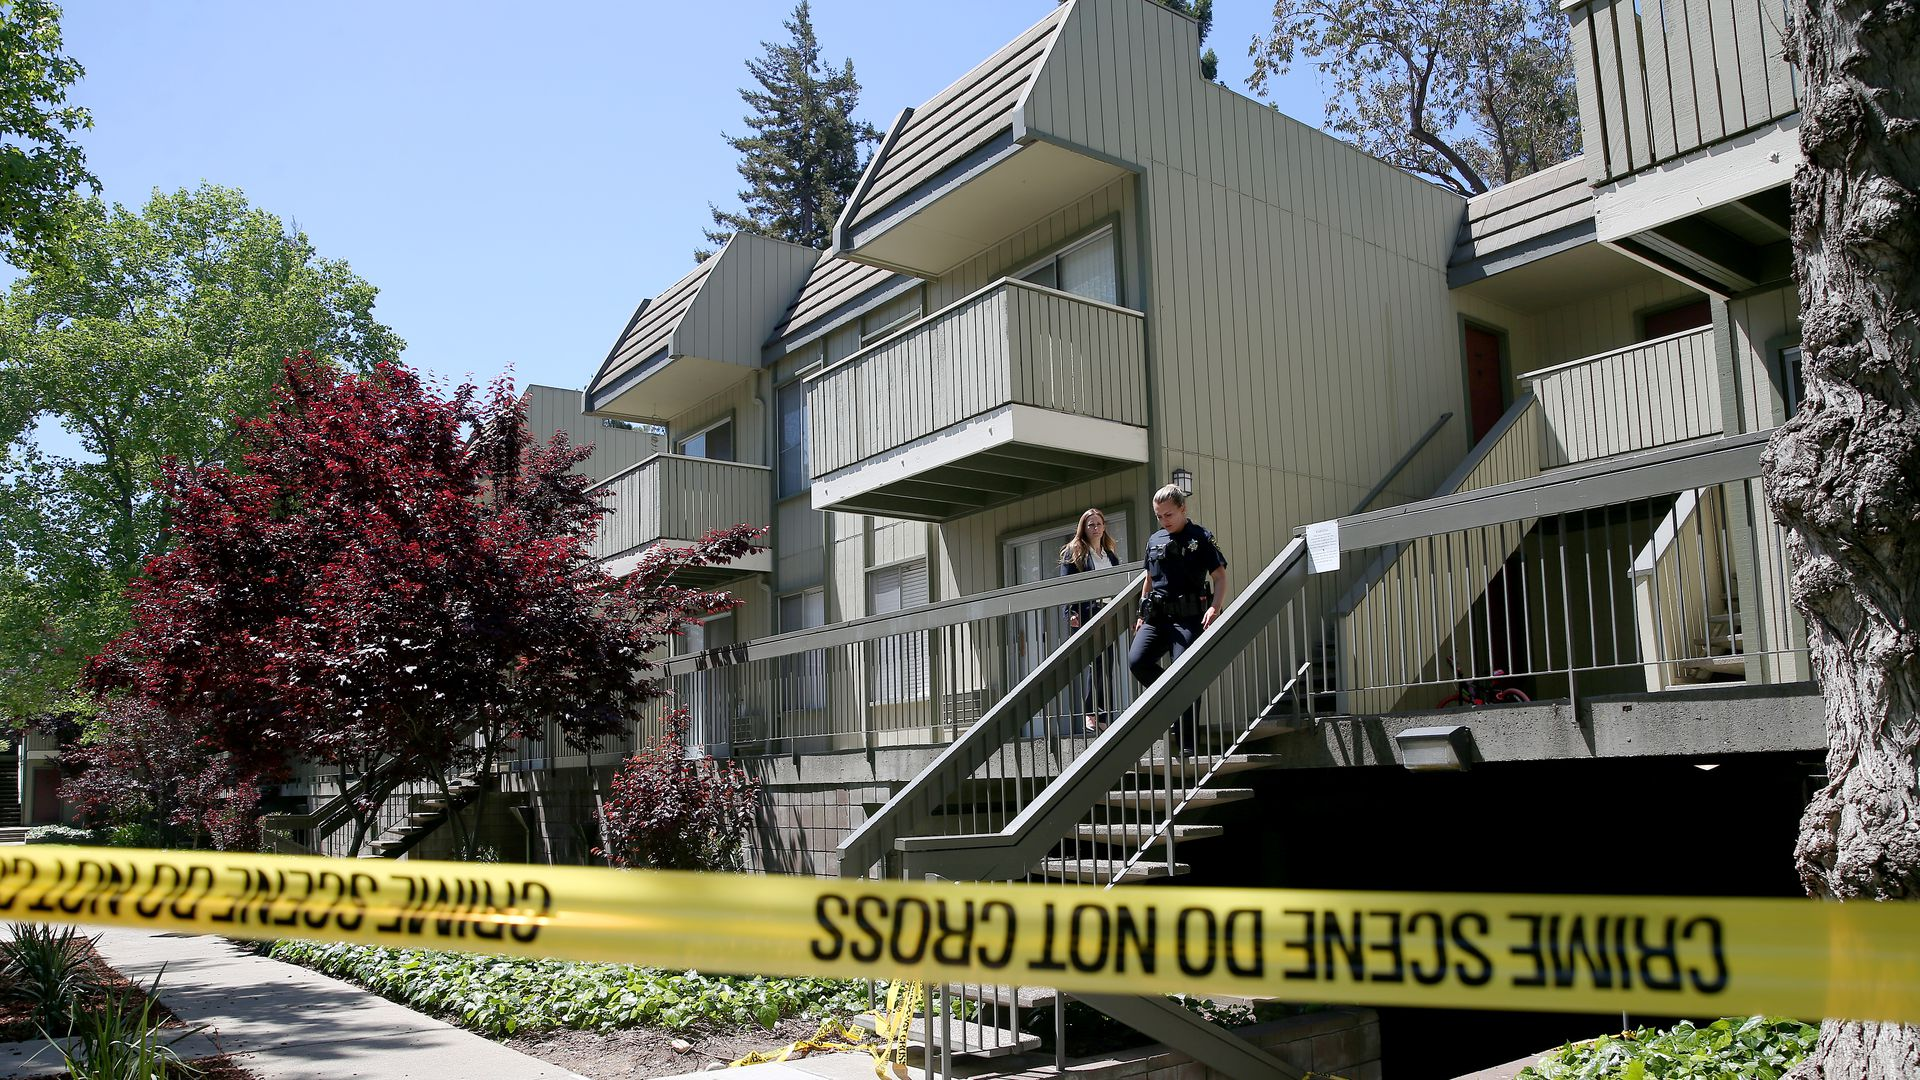 Lincoln Glen apartments in Sunnyvale, California, where Army veteran Isaiah J. Peoples lives.